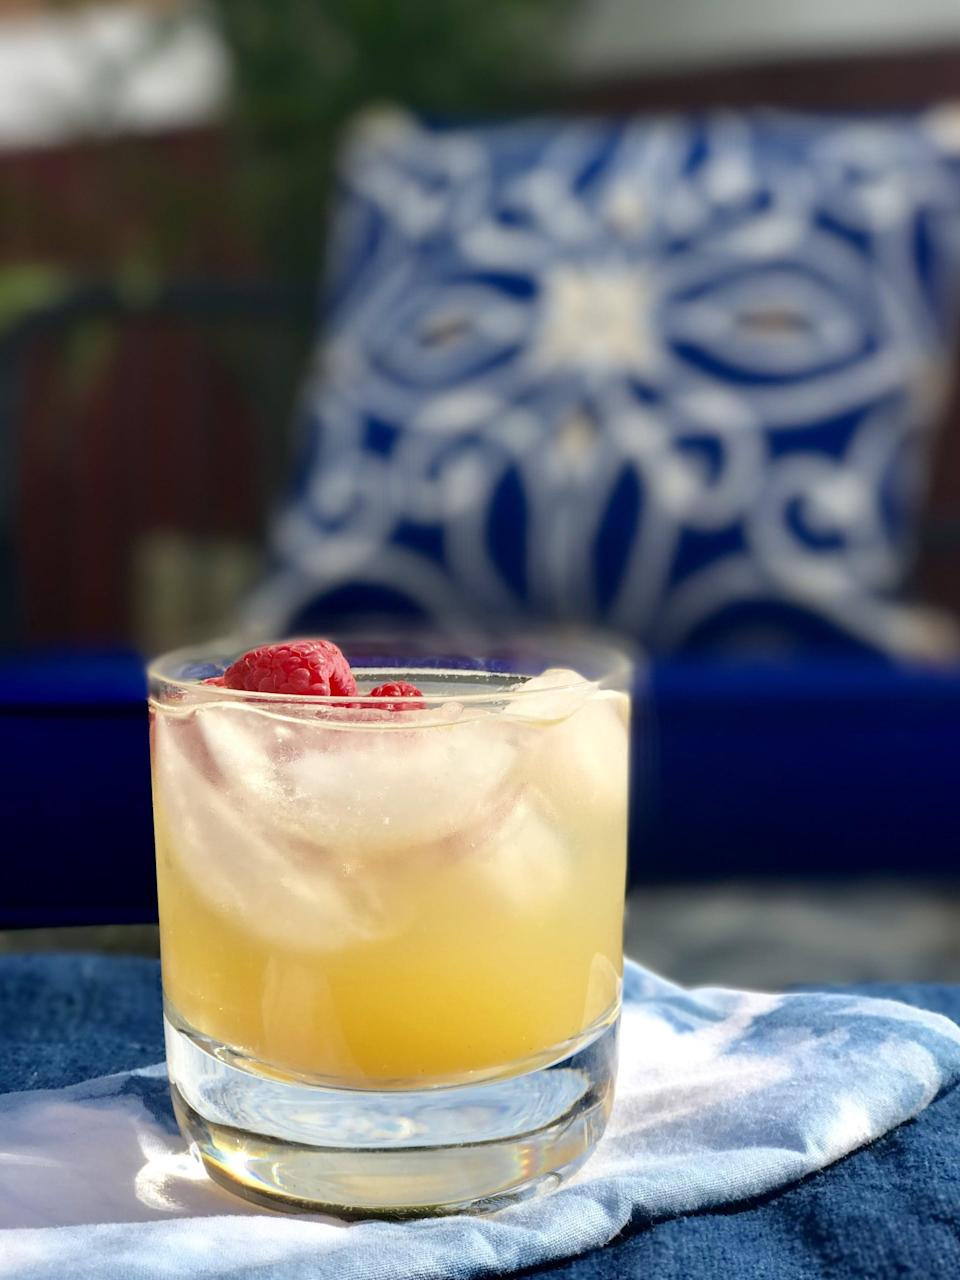 """<p>Peaches, Prosecco, and raspberries? It's like you're bottling Summer into a glass! You can thank Julie Hartigan, founder of <a href=""""http://cookingwjulie.com/"""" class=""""link rapid-noclick-resp"""" rel=""""nofollow noopener"""" target=""""_blank"""" data-ylk=""""slk:Cooking w/Julie"""">Cooking w/Julie</a>, for this 103-calorie cocktail. We recommend making enough of this punch to serve your whole crew!</p> <p><strong>Ingredients: </strong></p> <ul> <li>1 bottle Prosecco </li> <li>1 cup peach or mango juice </li> <li>1 cup raspberry seltzer </li> <li>6 dashes bitters </li> <li>Fresh or frozen raspberries for garnish </li> </ul> <p><strong>Directions:</strong> Combine all the ingredients together, and serve on the rocks. Garnish with raspberry.</p>"""